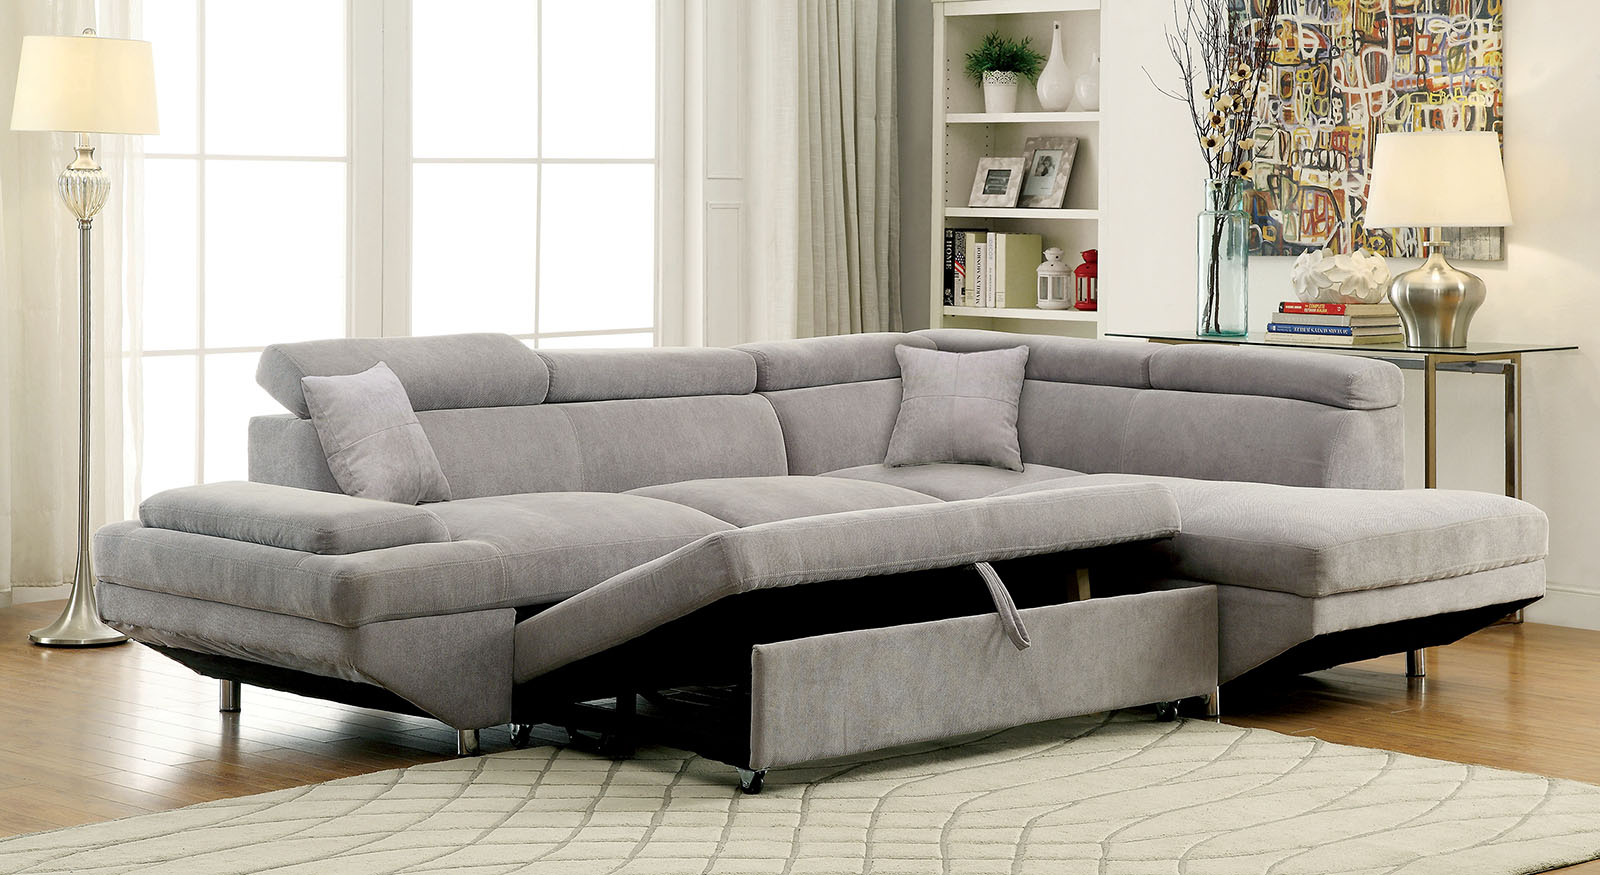 foreman 6124gy gray sleeper sectional with chaise